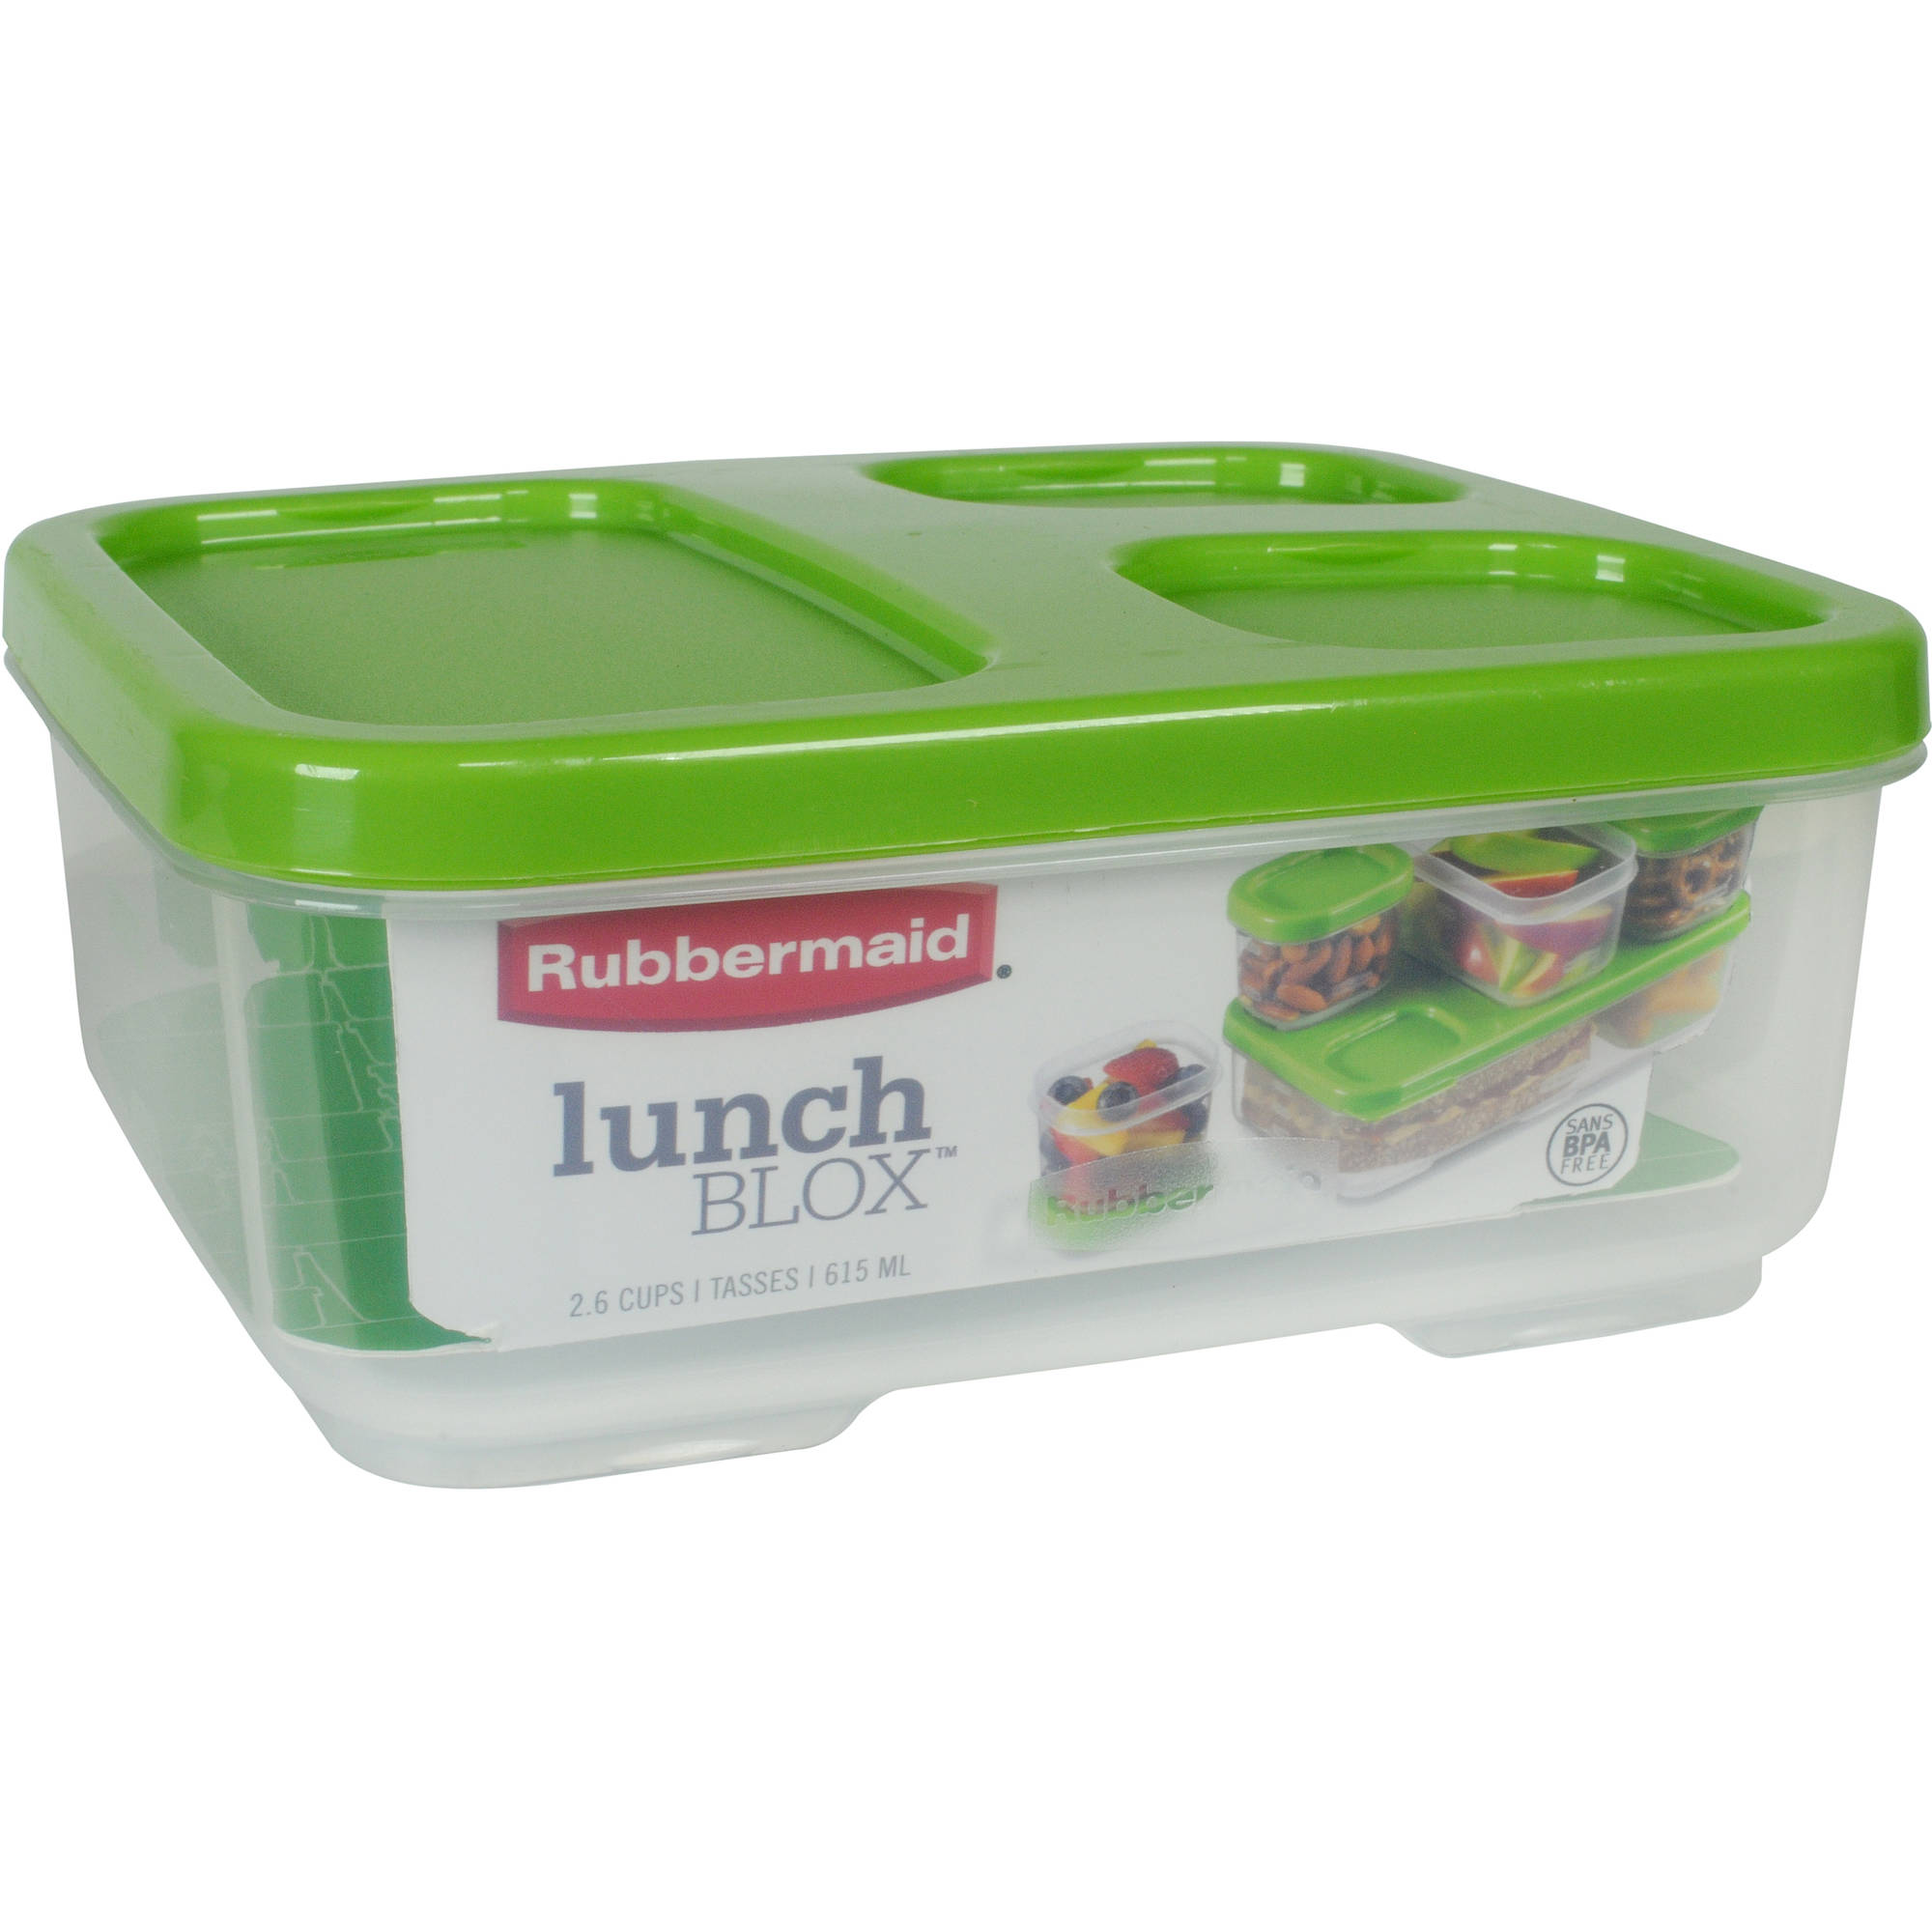 Rubbermaid LunchBlox Sandwich Storage Container, Case of 6